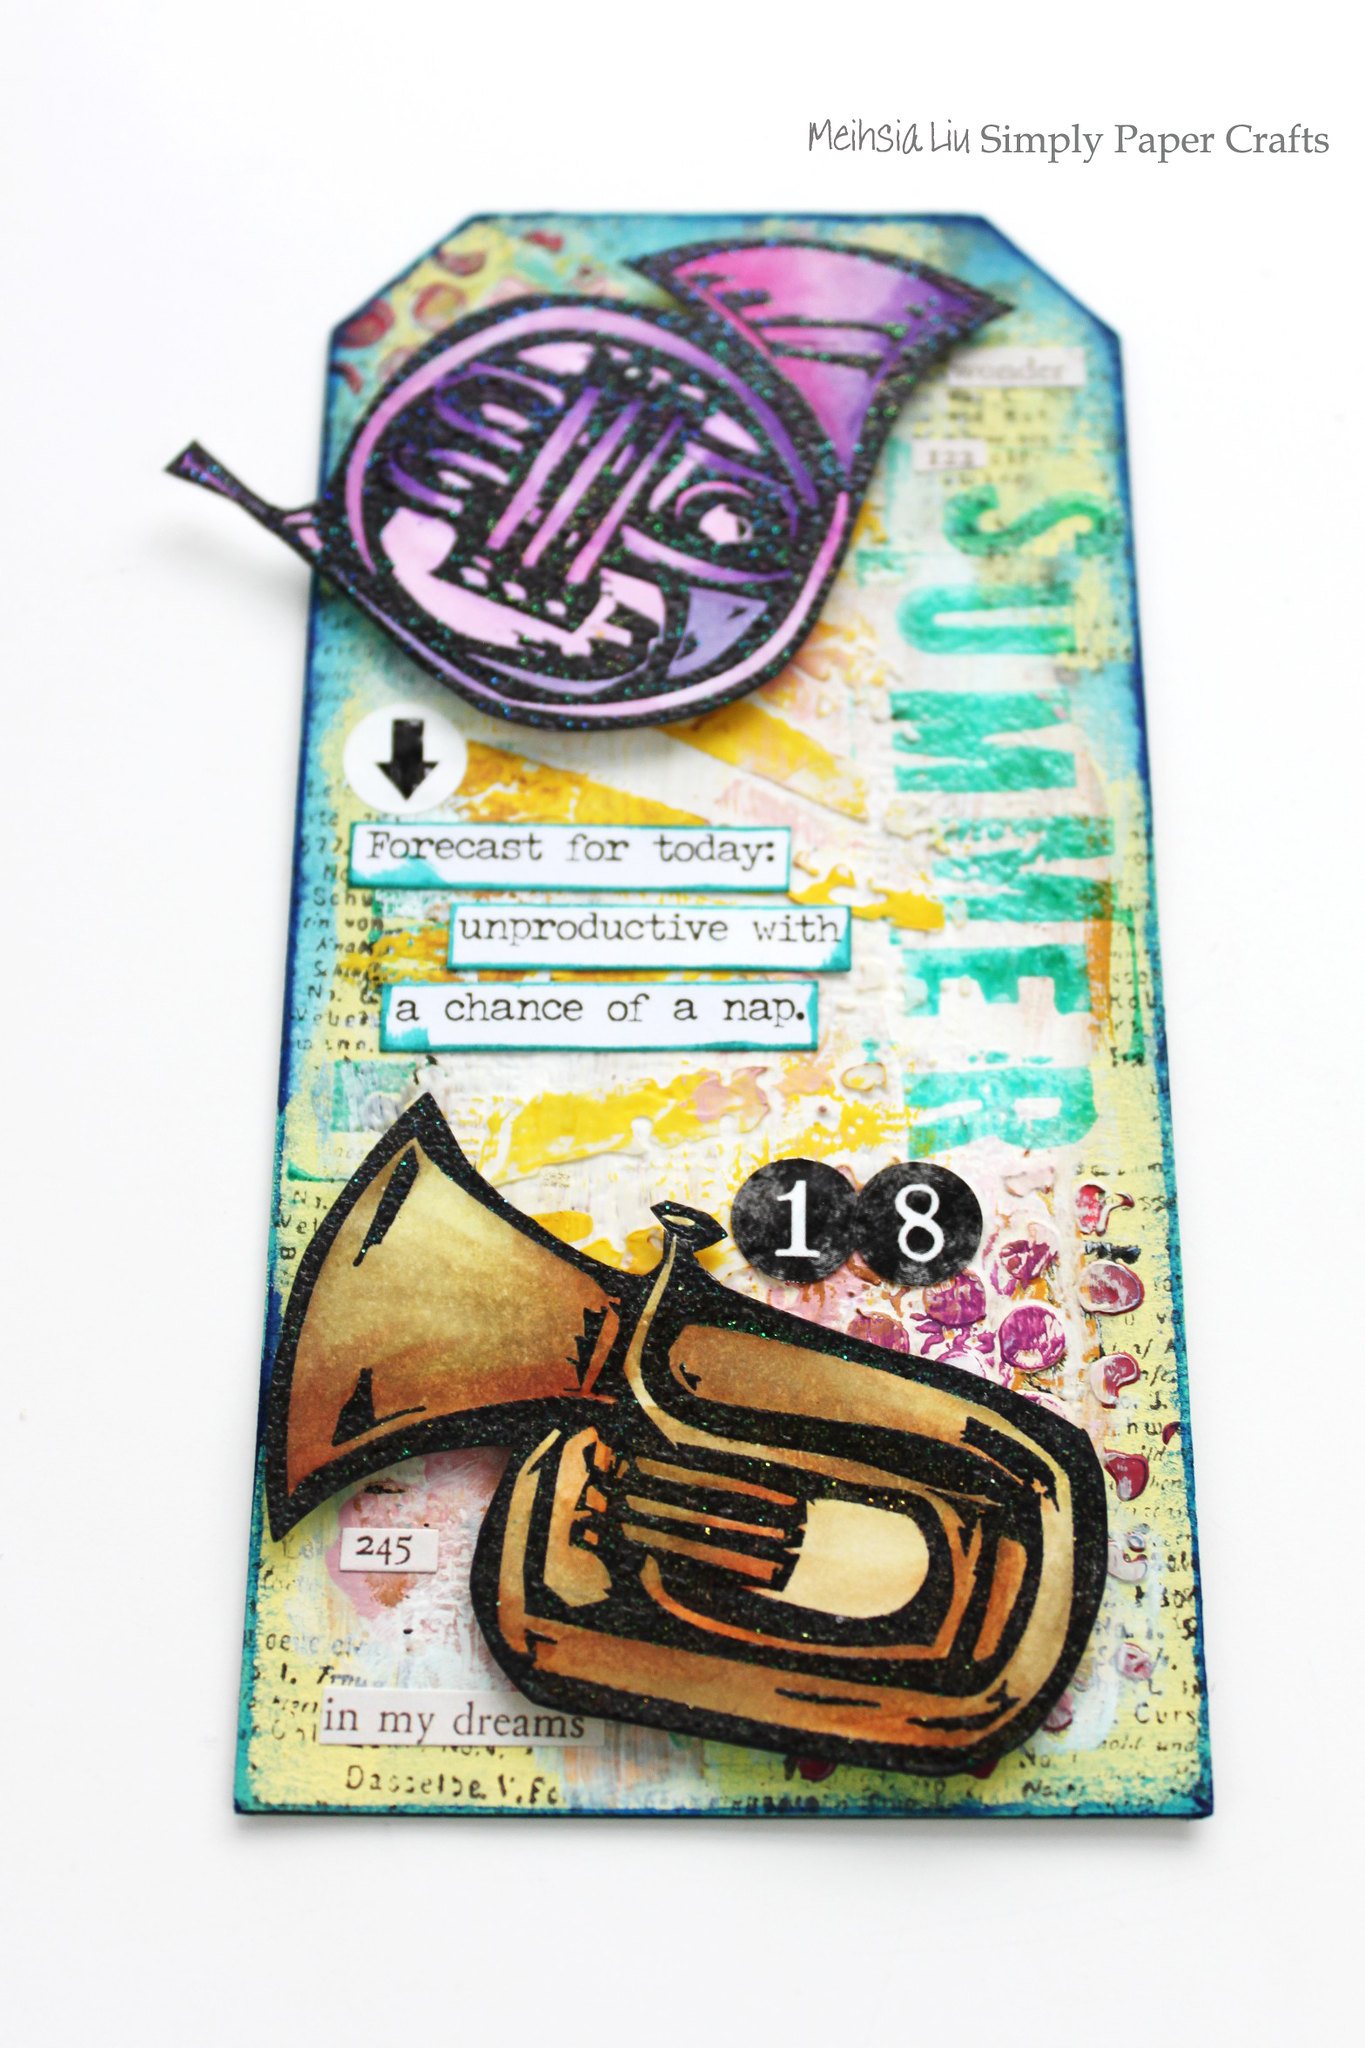 Meihsia Liu Simply Paper Crafts Mixed Media Tag Summer Fun Music Instrument Simon Says Stamp Tim Holtz 1